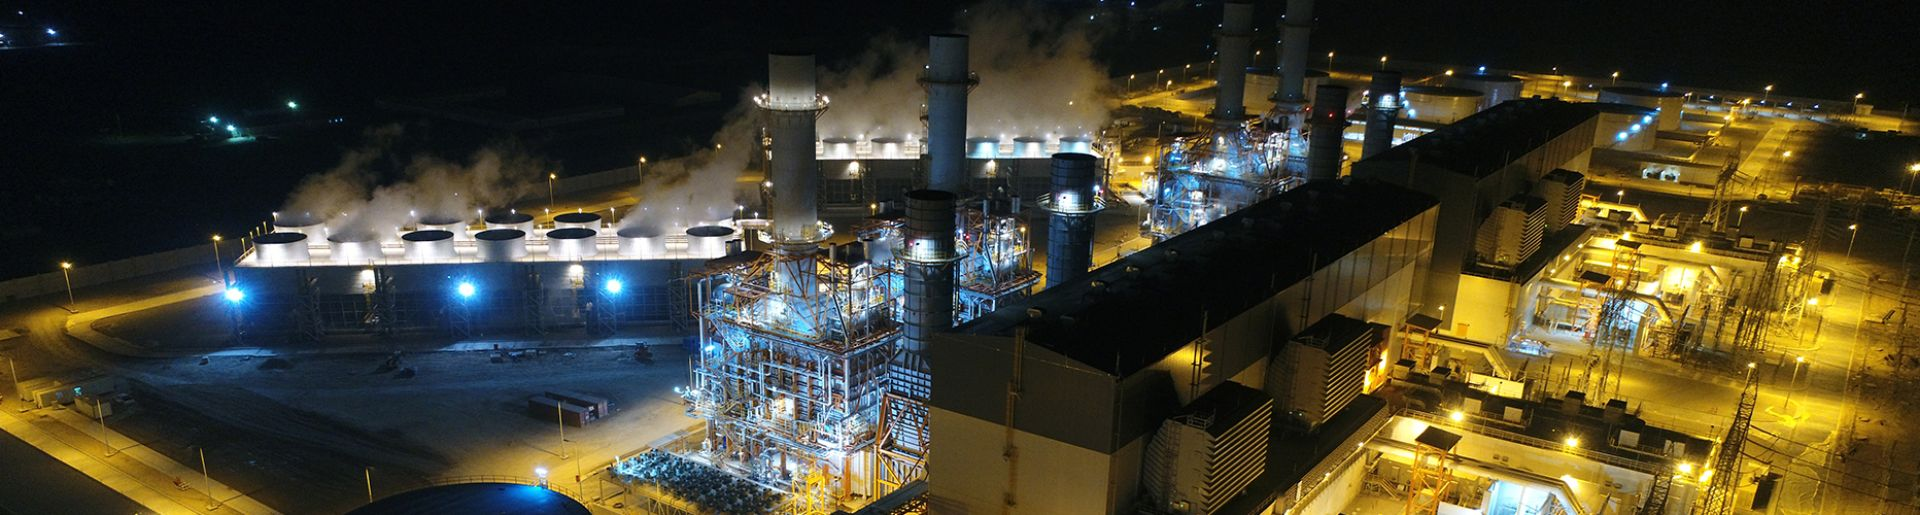 Baghdad Besmaya 1500 Mw Ccpp Enka Naat Ve Sanayi A Power Plant General Layout Combined Cycle